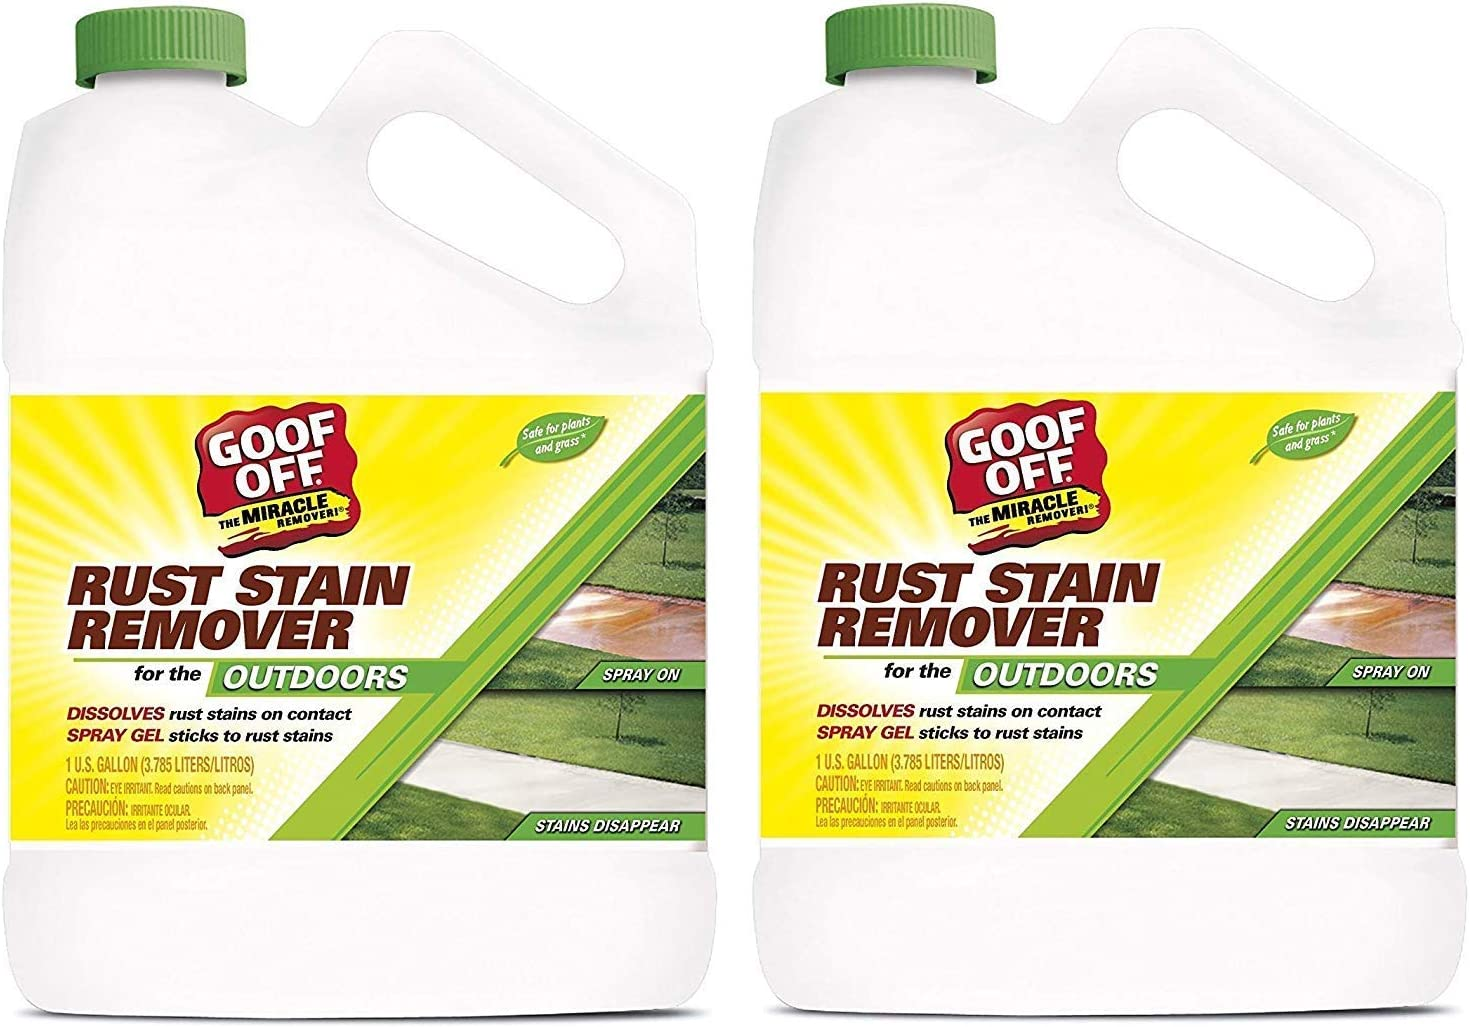 RustAid GSX00101 Goof Free shipping / New Direct stock discount 1 Gallon Stain Remover Rust 2-Pack GAL